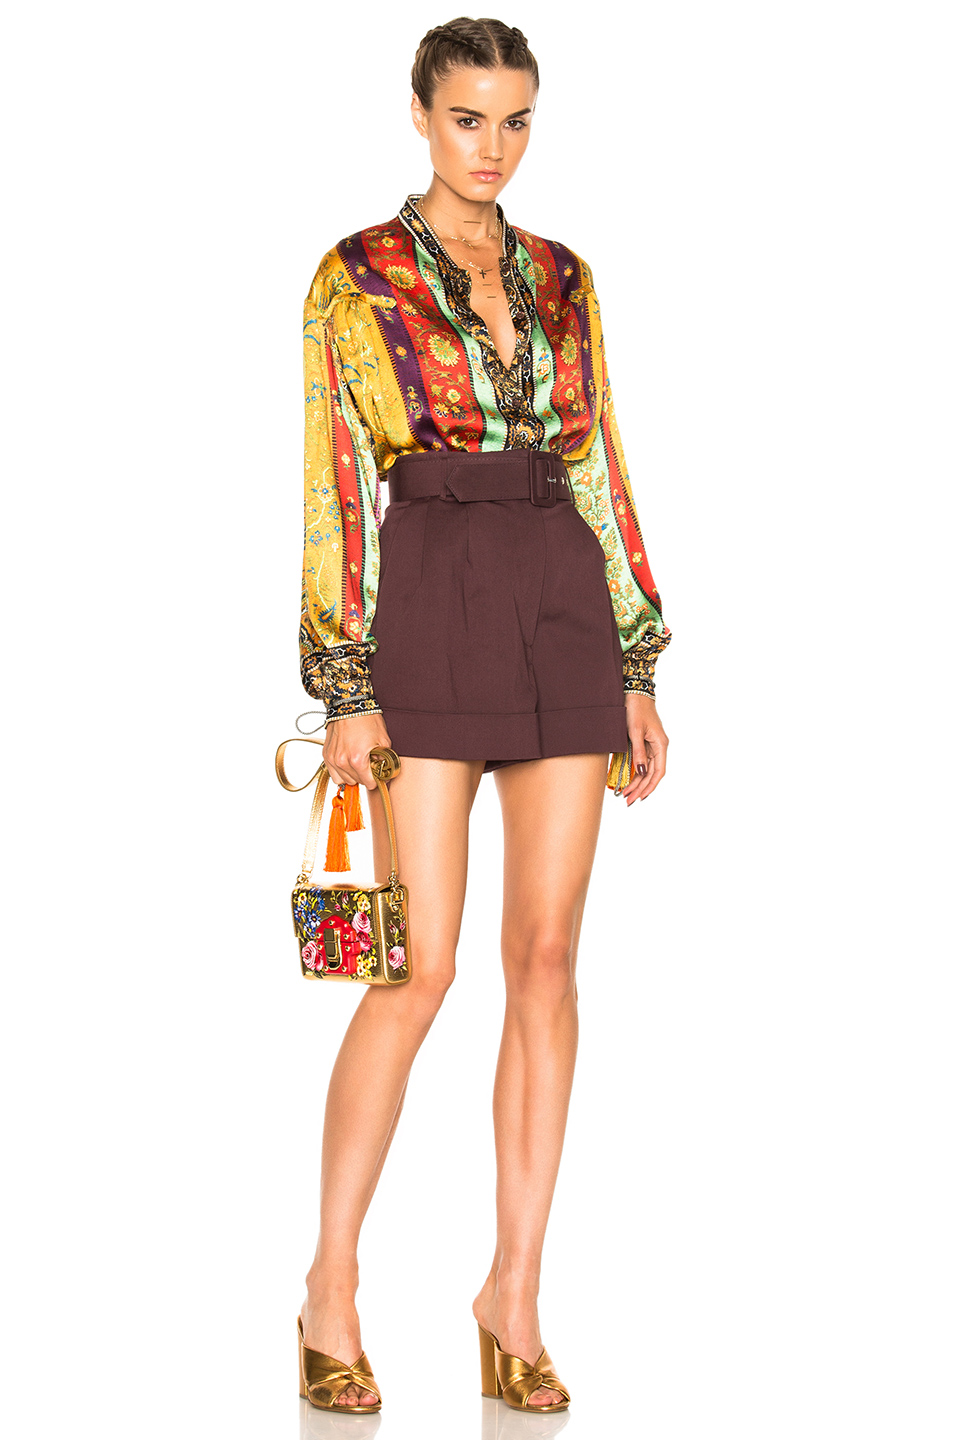 Etro Saffron Shirt in Abstract,Green,Purple,Red,Yellow